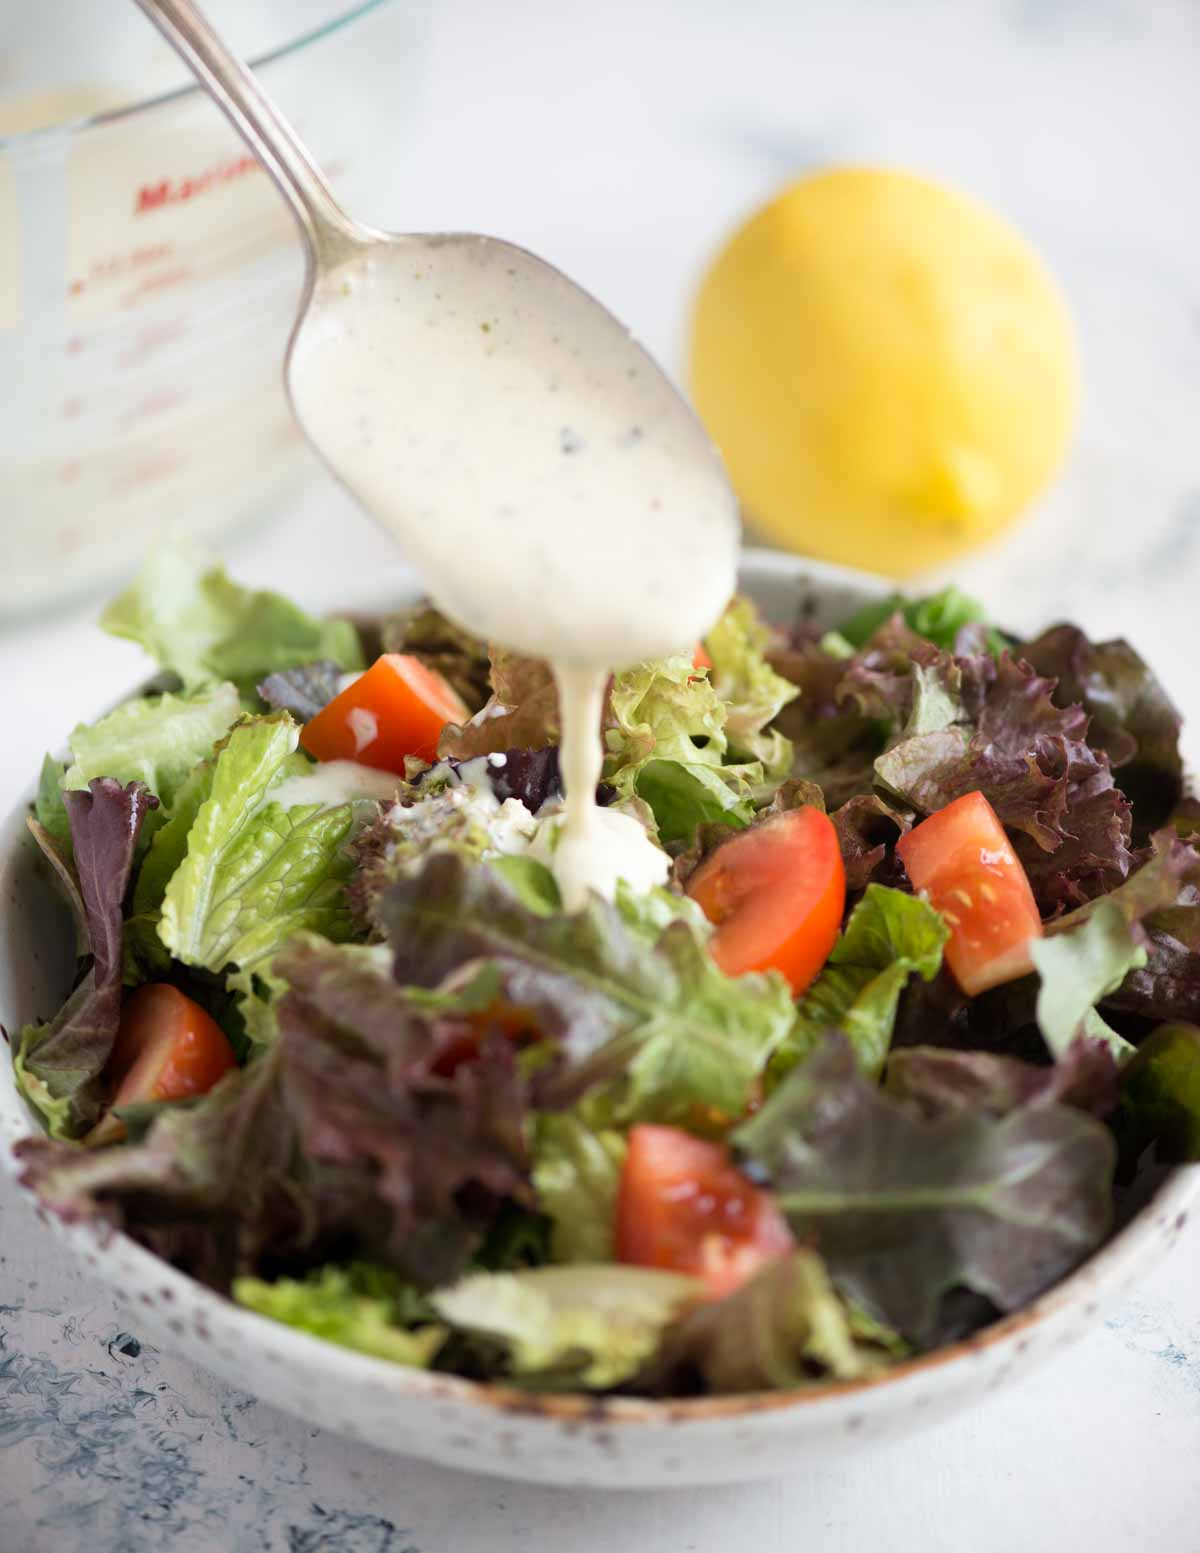 Picture of spoonful of Italian Parmesan Peppercorn dressing added to a leafy vegetable salad in a bowl.